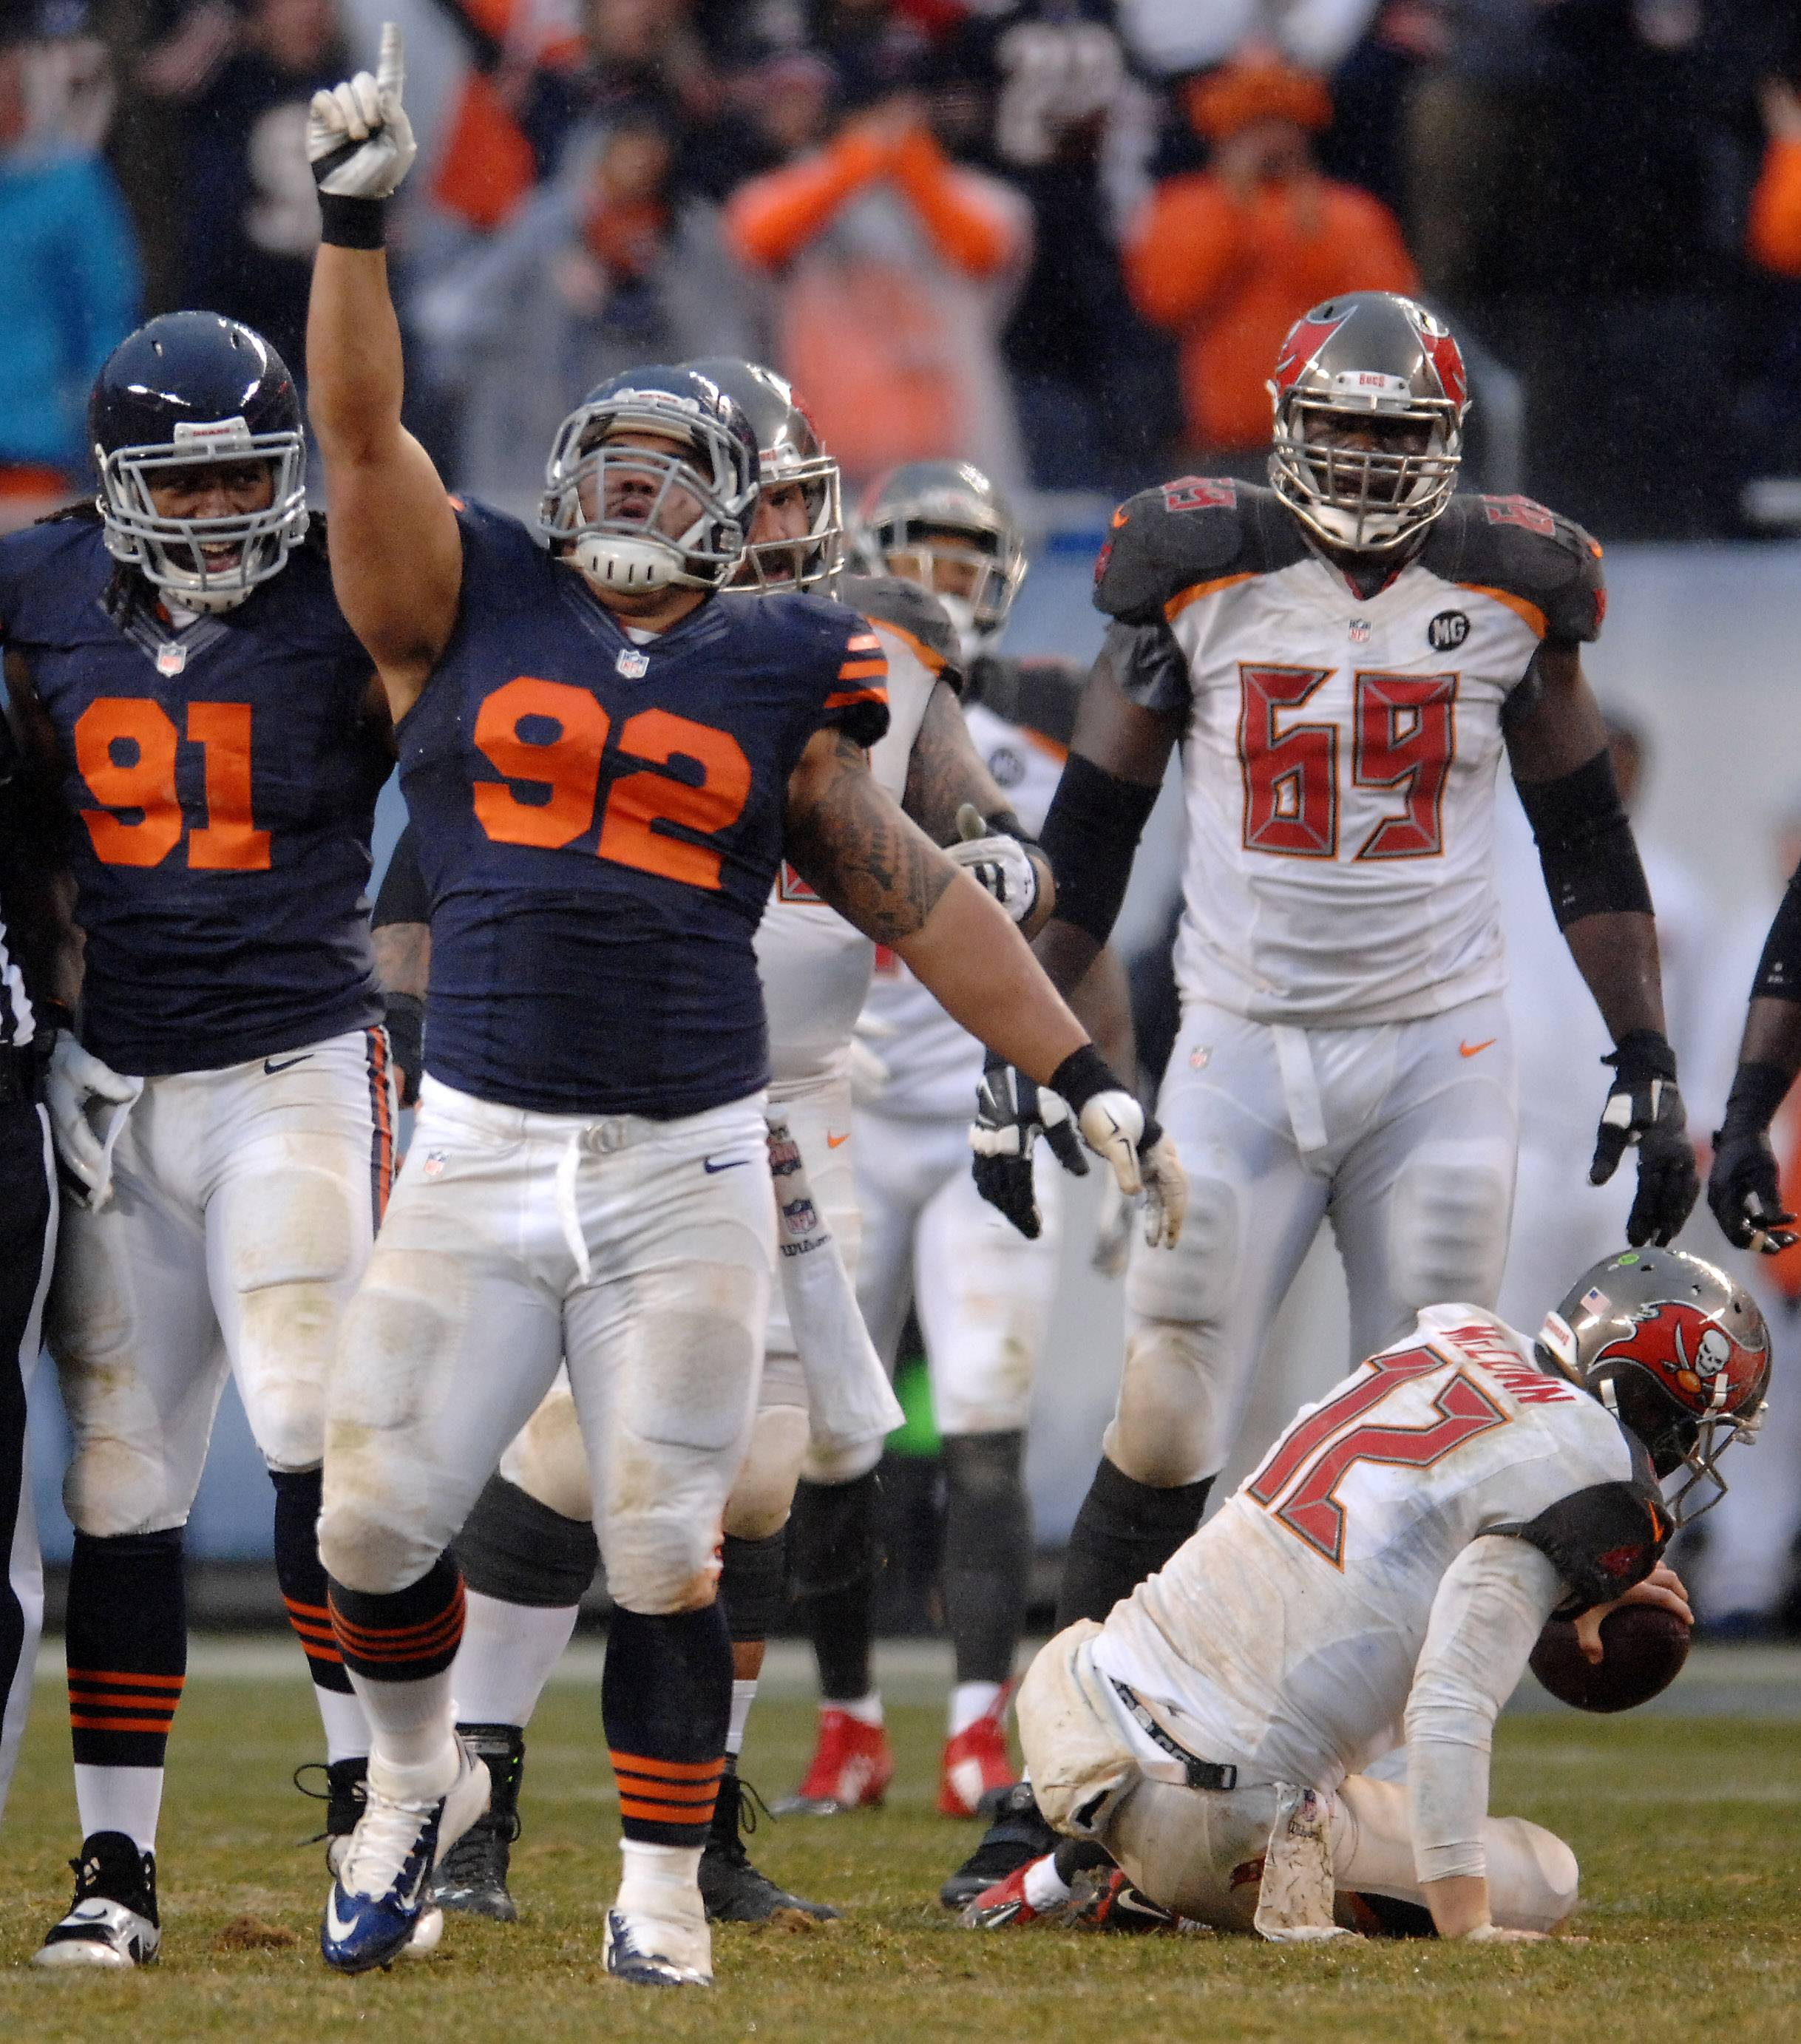 Bears defensive tackle Stephen Paea celebrates 1 of his 2 sacks against the Bucs in Sunday's 21-13 win at Soldier Field.